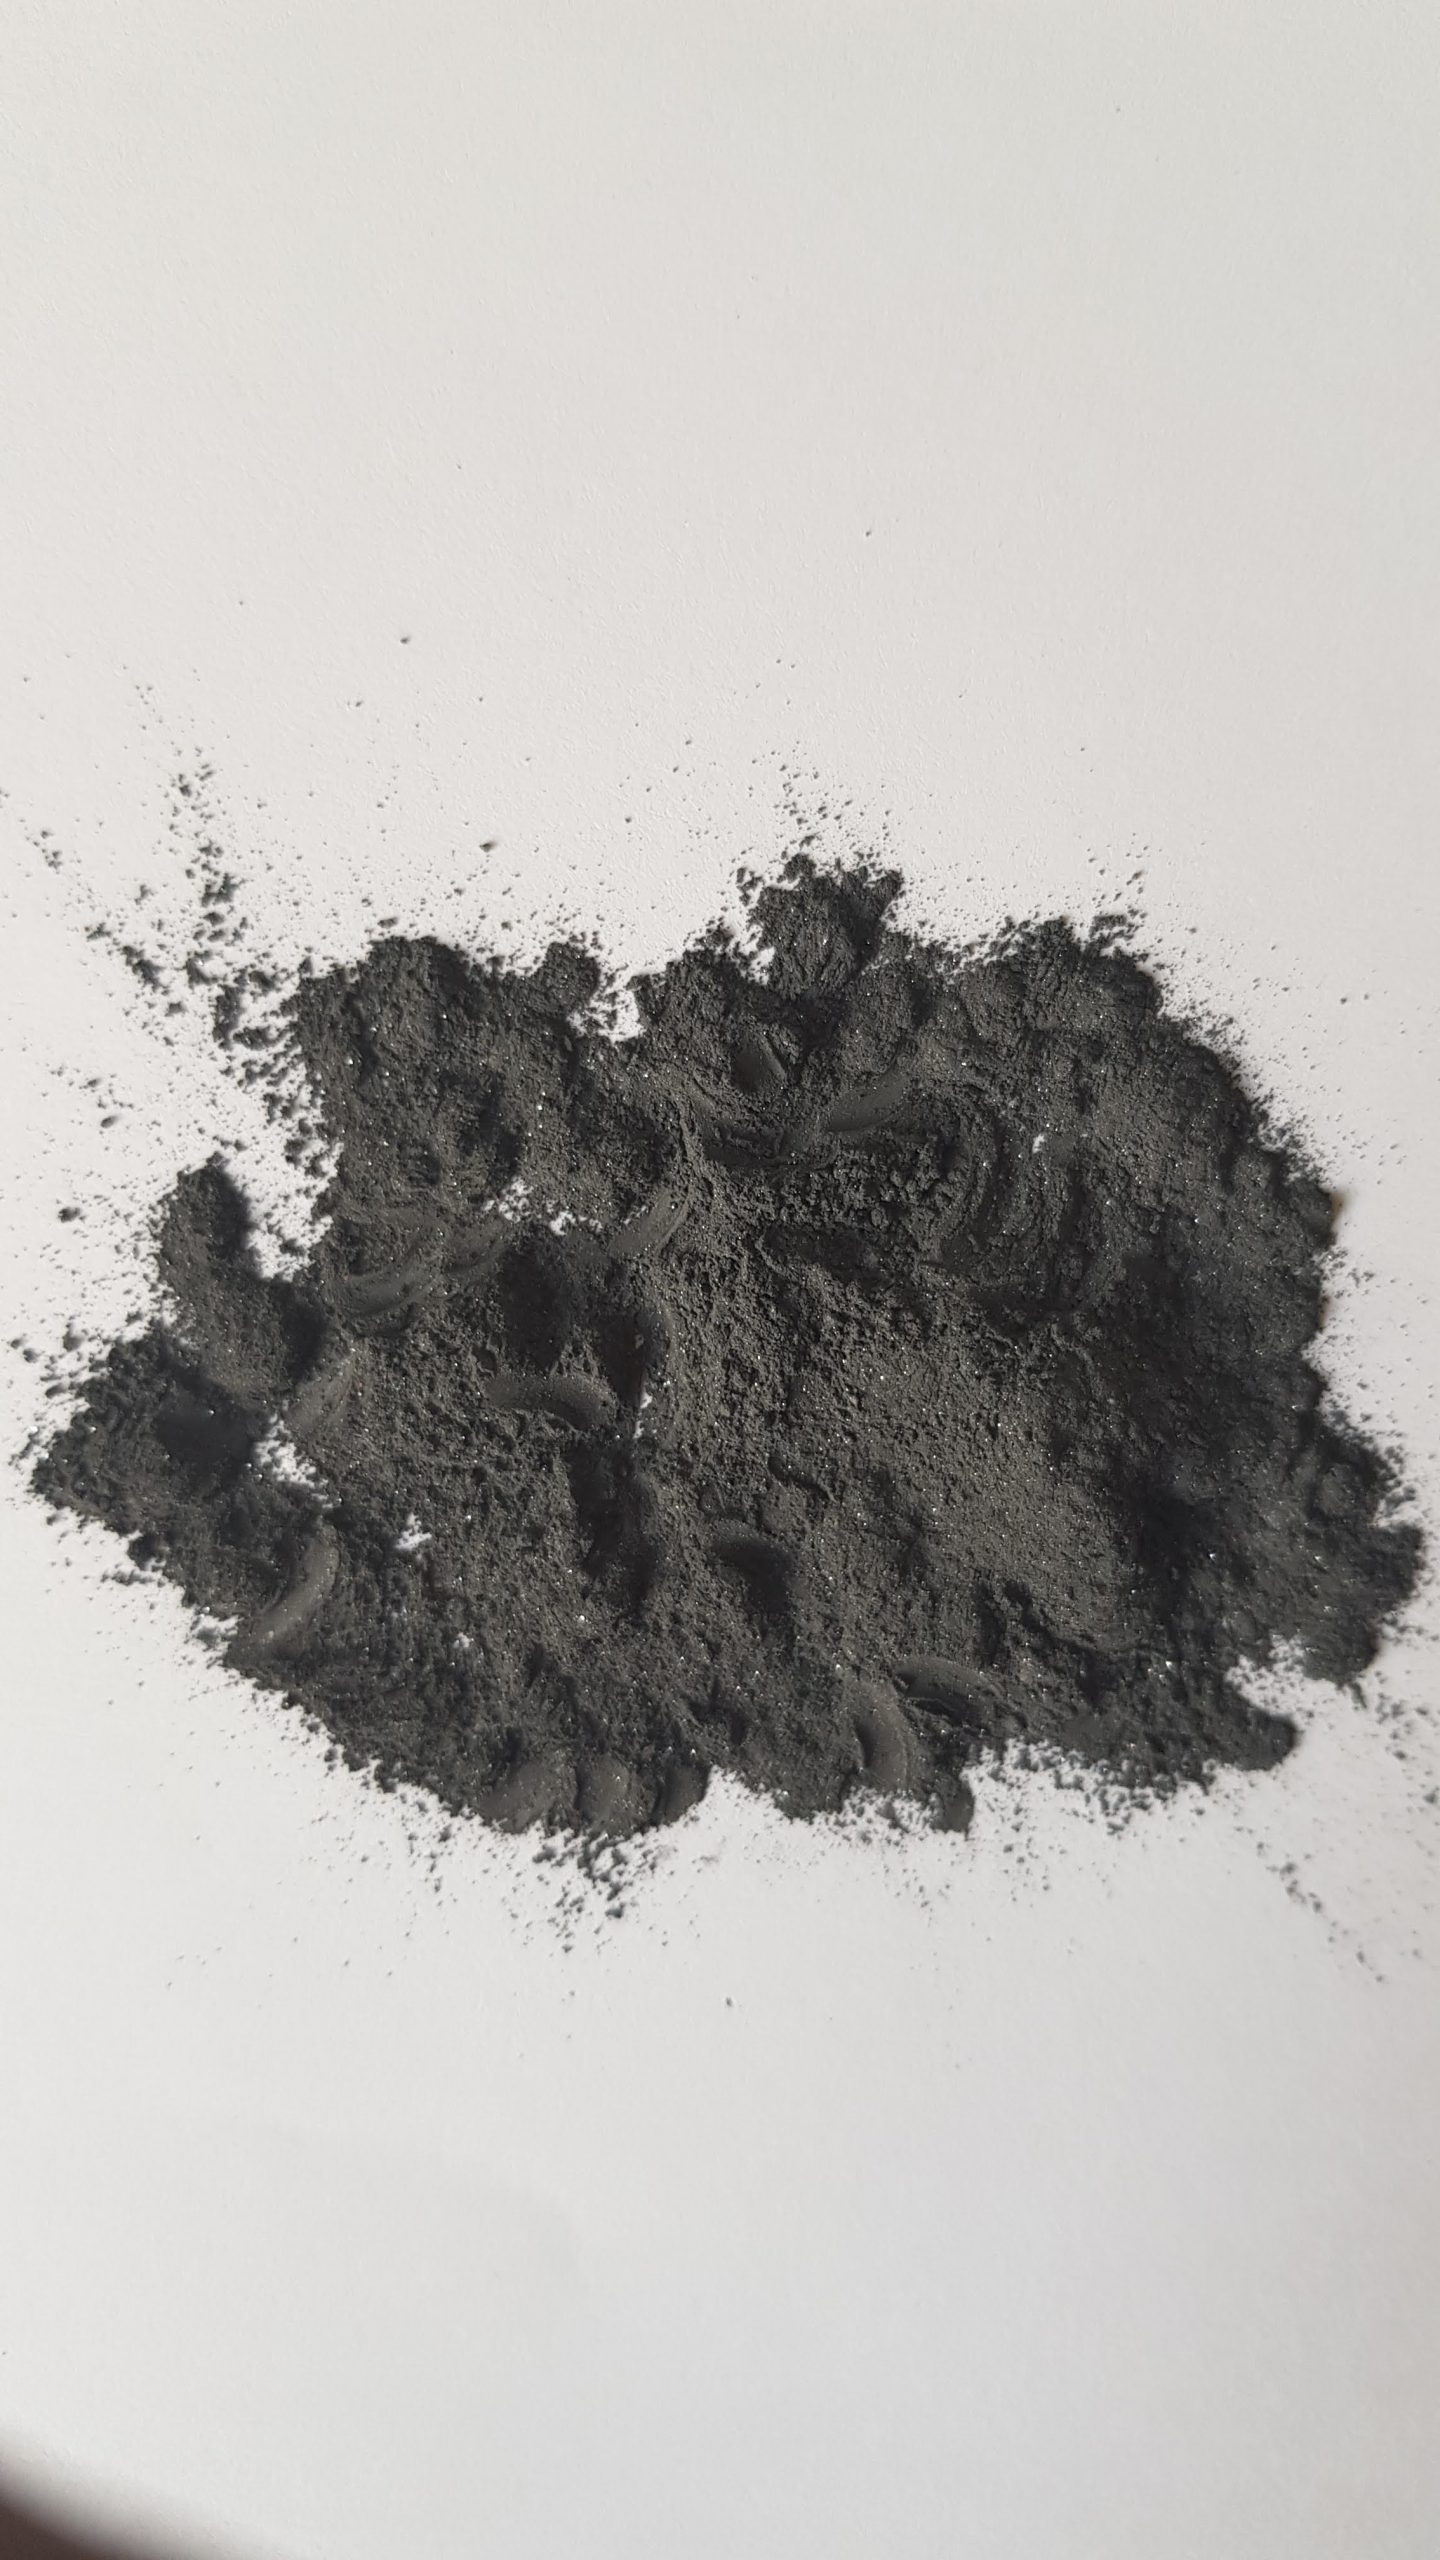 Pure black ithmid kohl